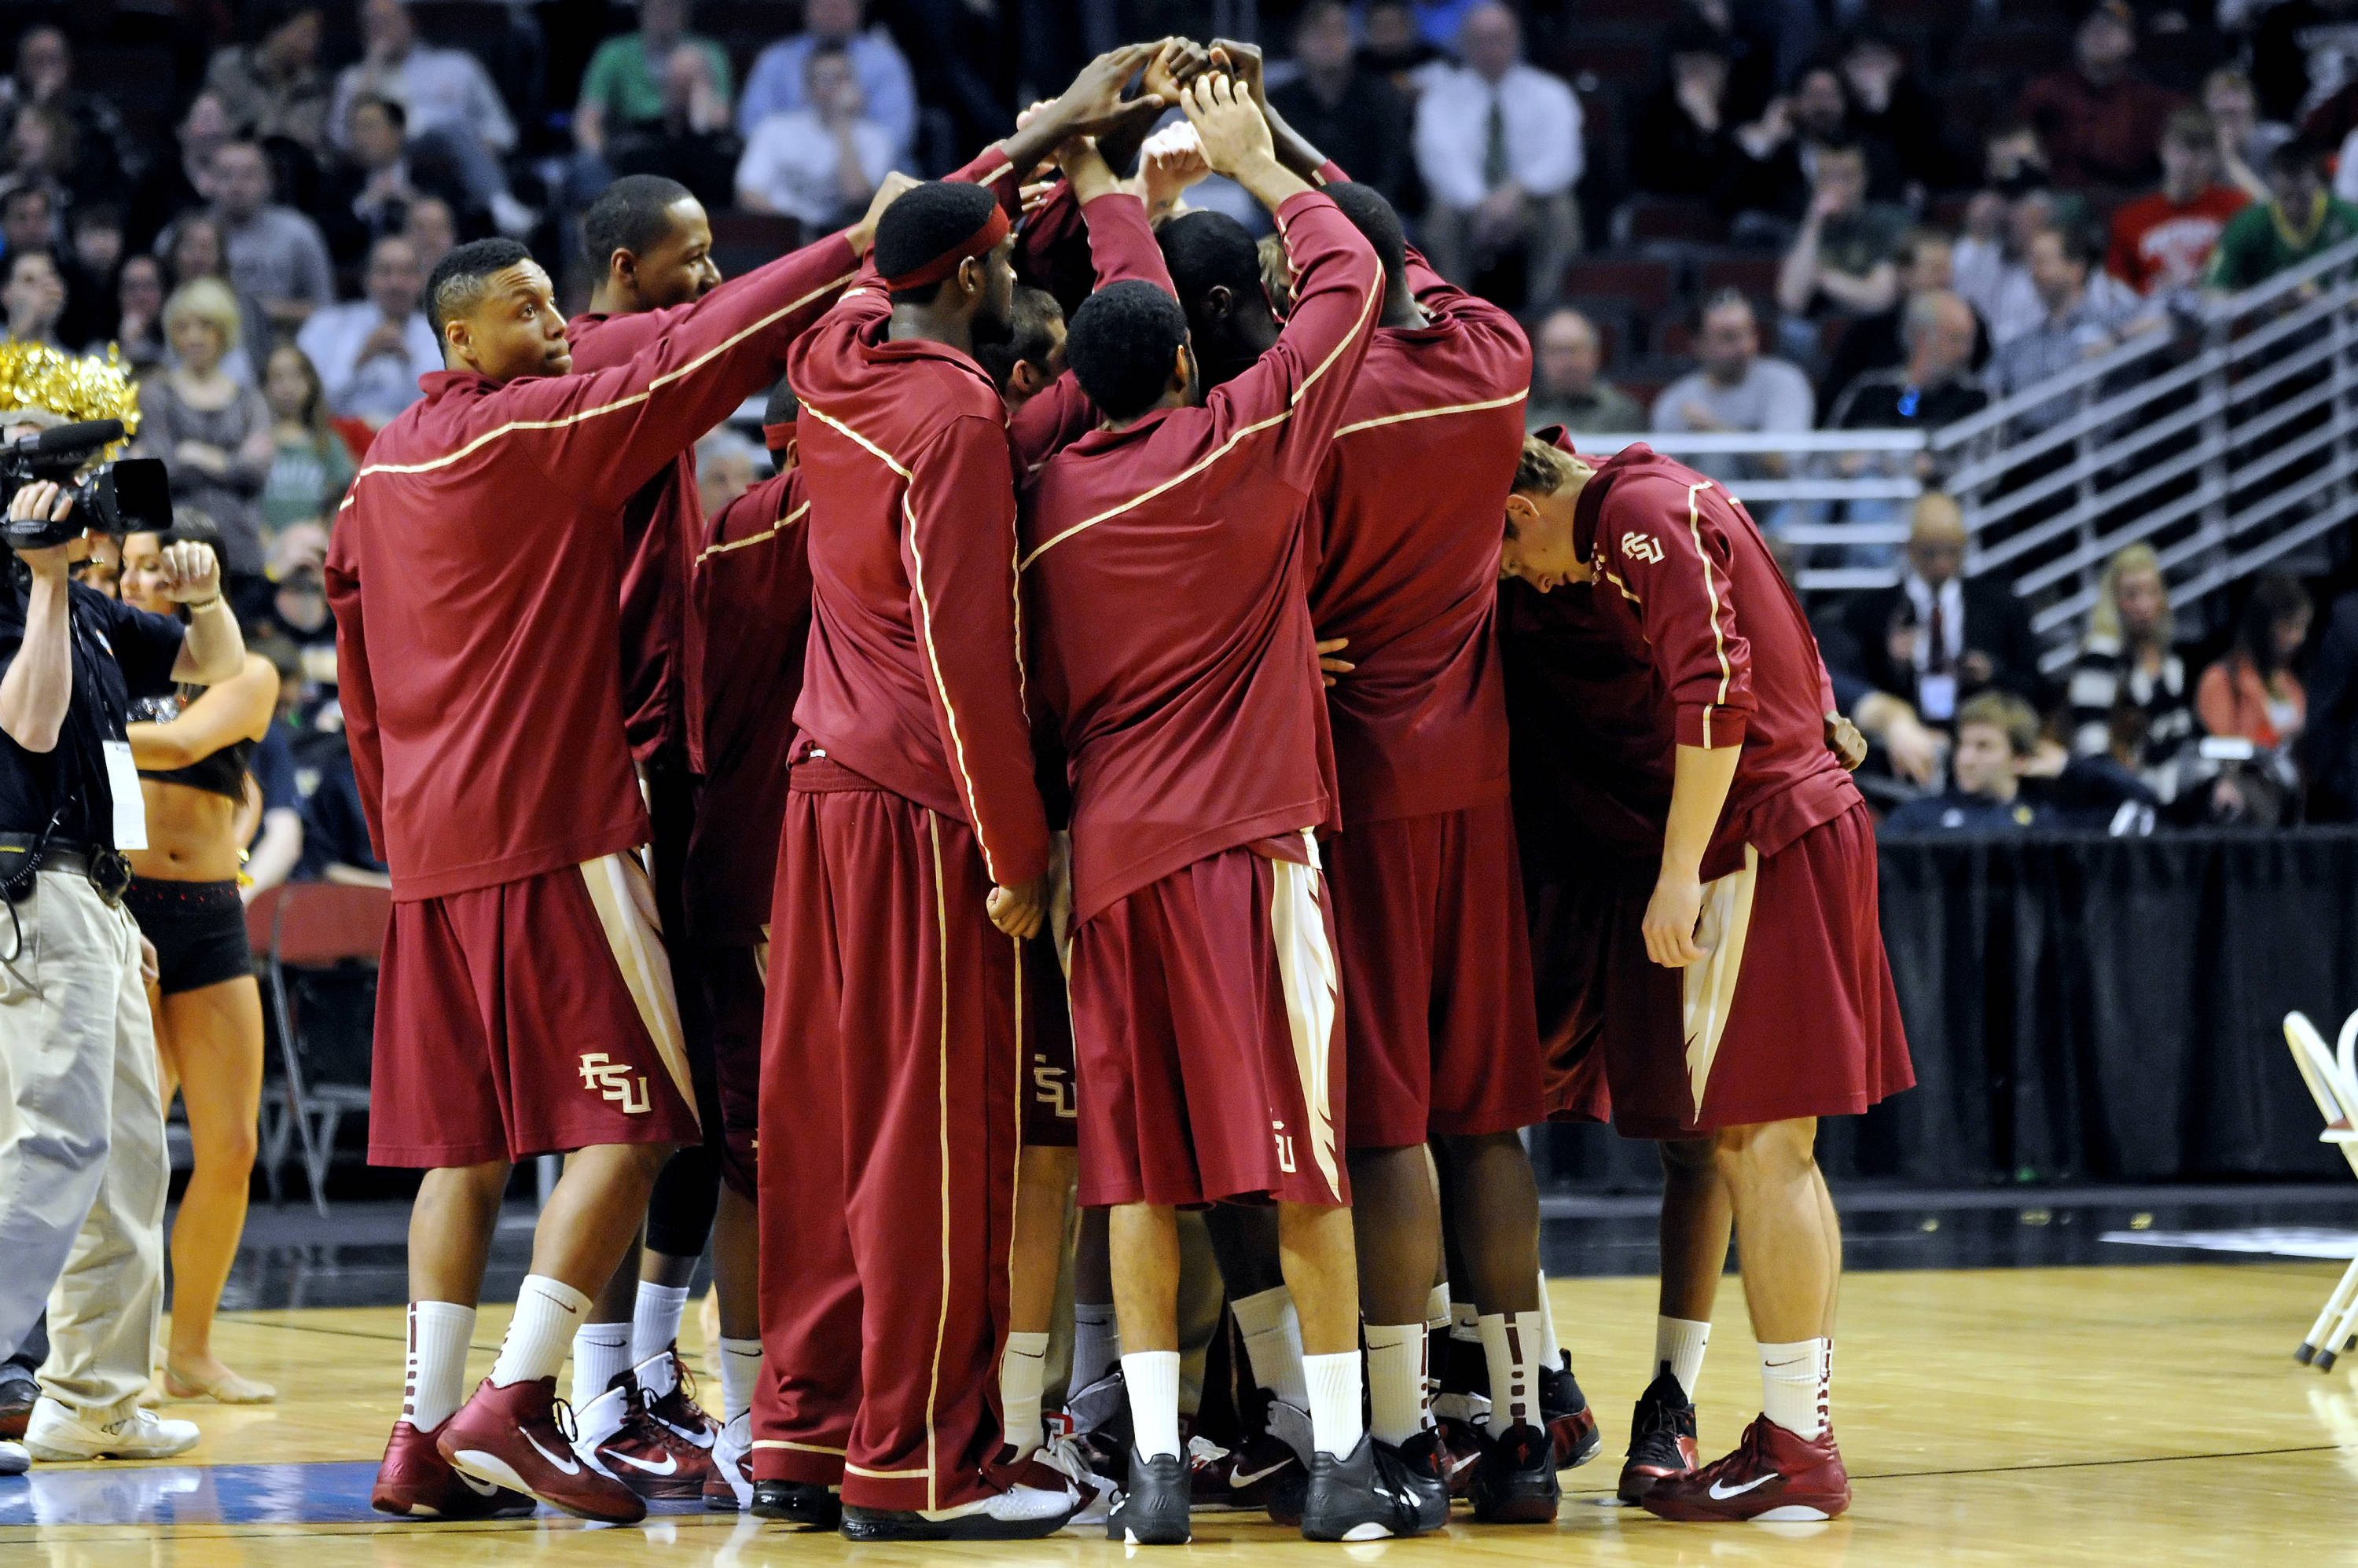 The Seminoles huddle before their NCAA second round game